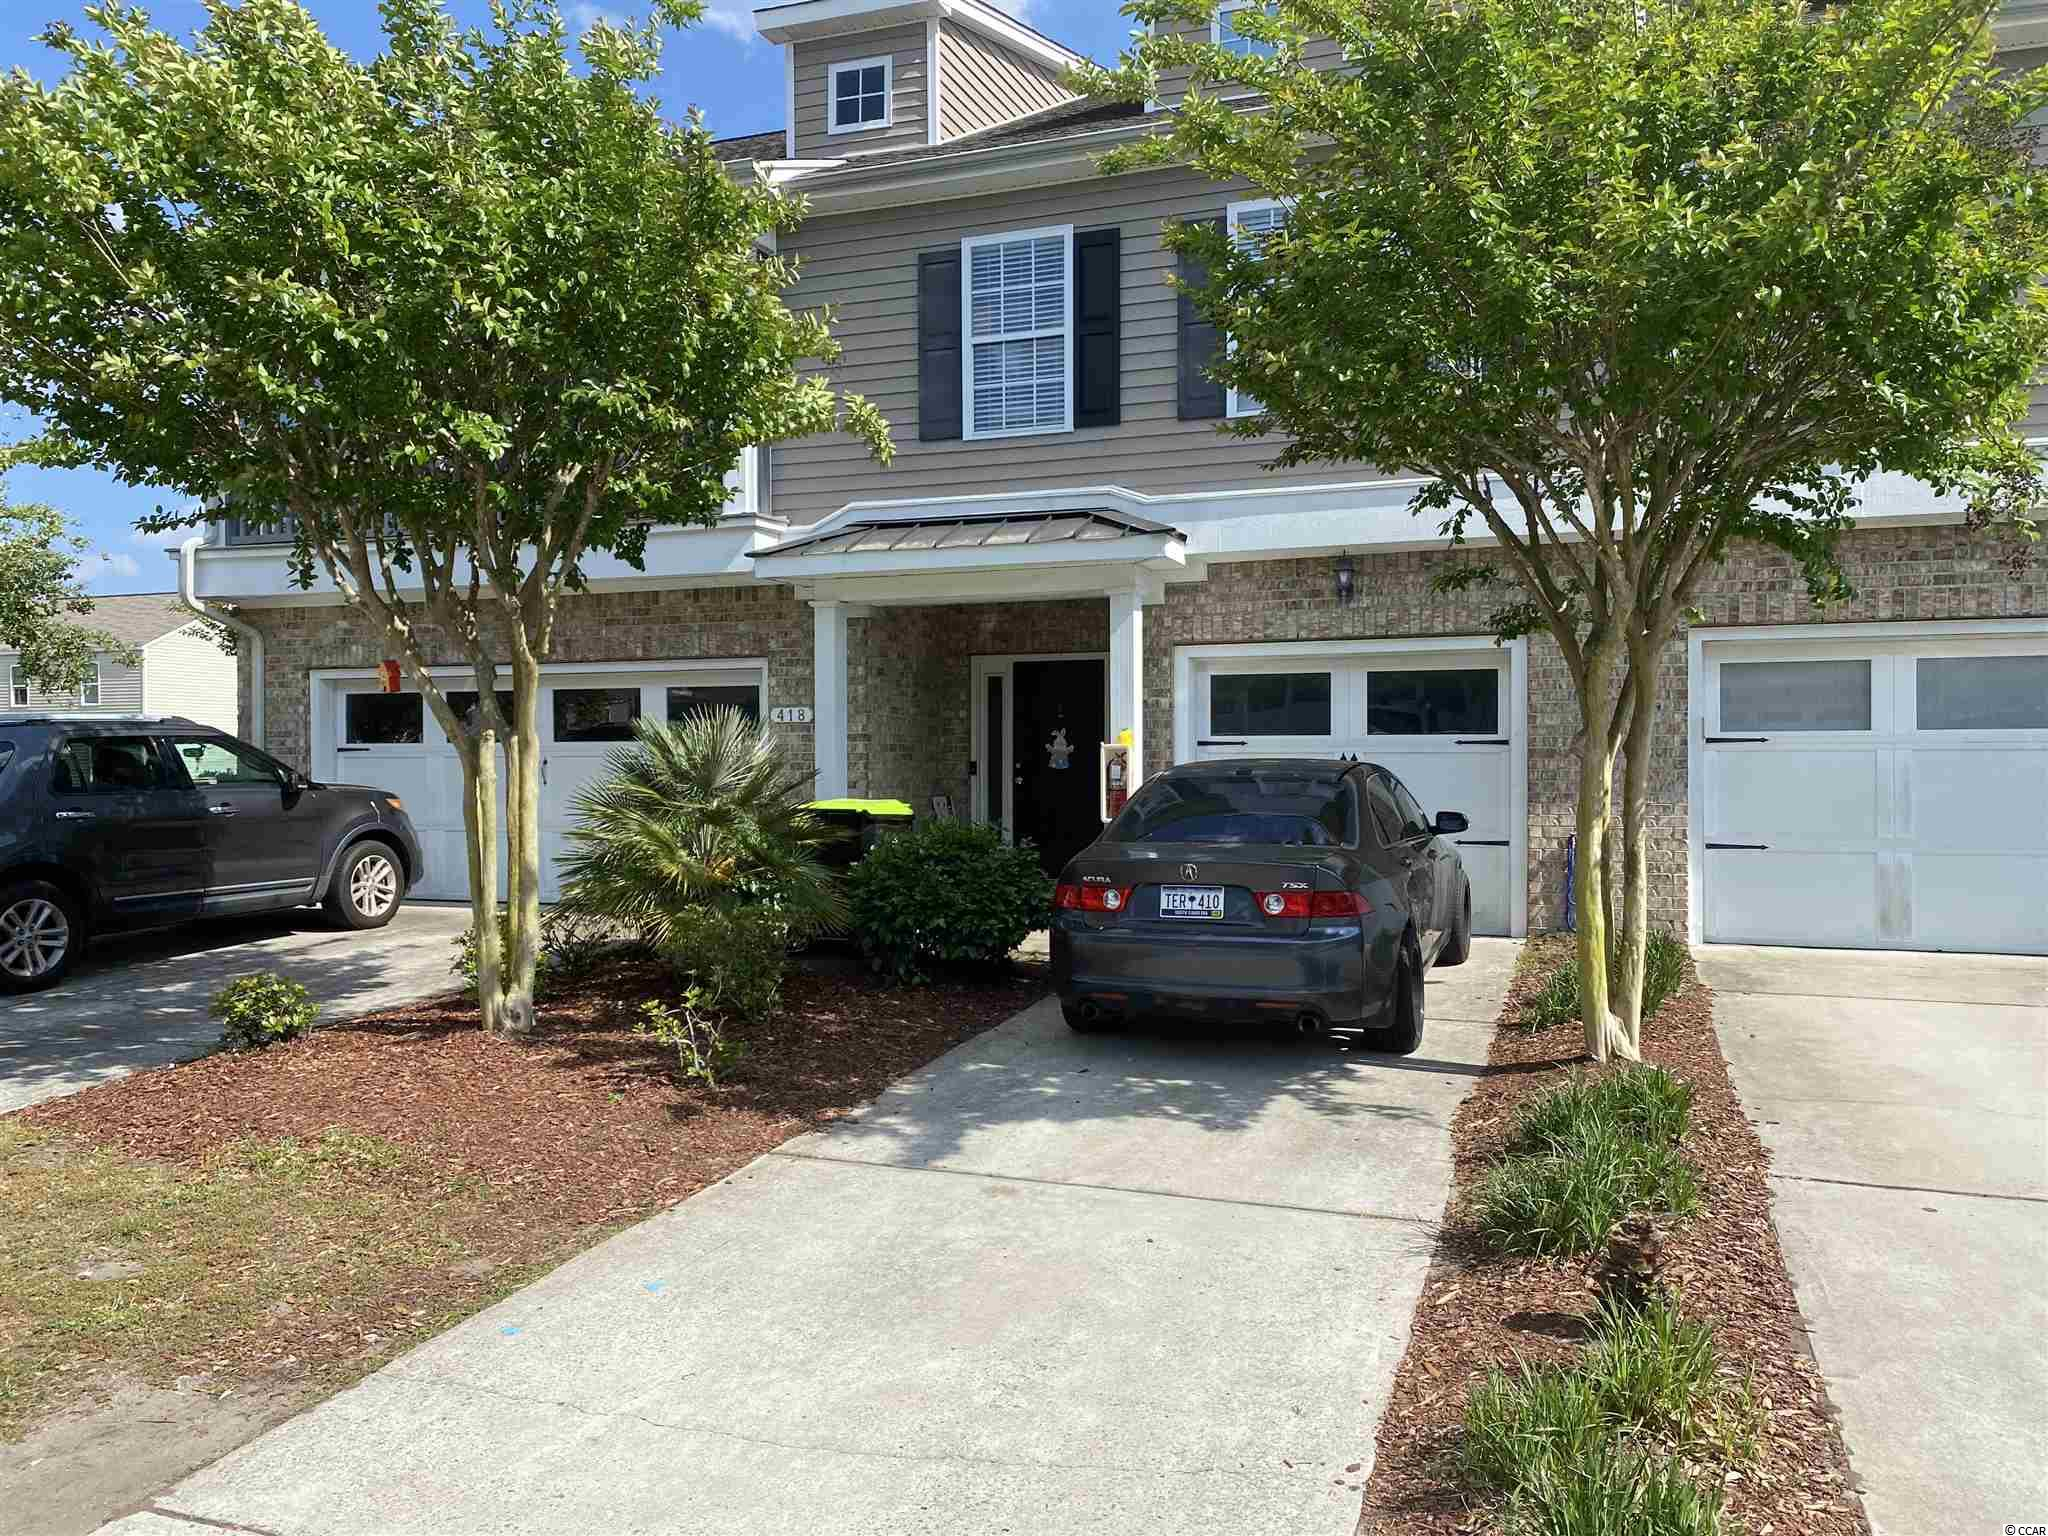 Great opportunity to own a very nice townhome in Planter's Point at The Farm in Carolina Forest. This townhome offers 2 bedrooms,2 baths high ceilings, tons of natural light, open kitchen with plenty of cabinets. new laminate and carpet throughout, a wrap around screened balcony where you can enjoy your morning coffee and a 1 car garage that can hold two cars !  This home is convenient to International Dr, Highway 31, the beach and everything else the Grand Strand has to offer. Don't miss this one !